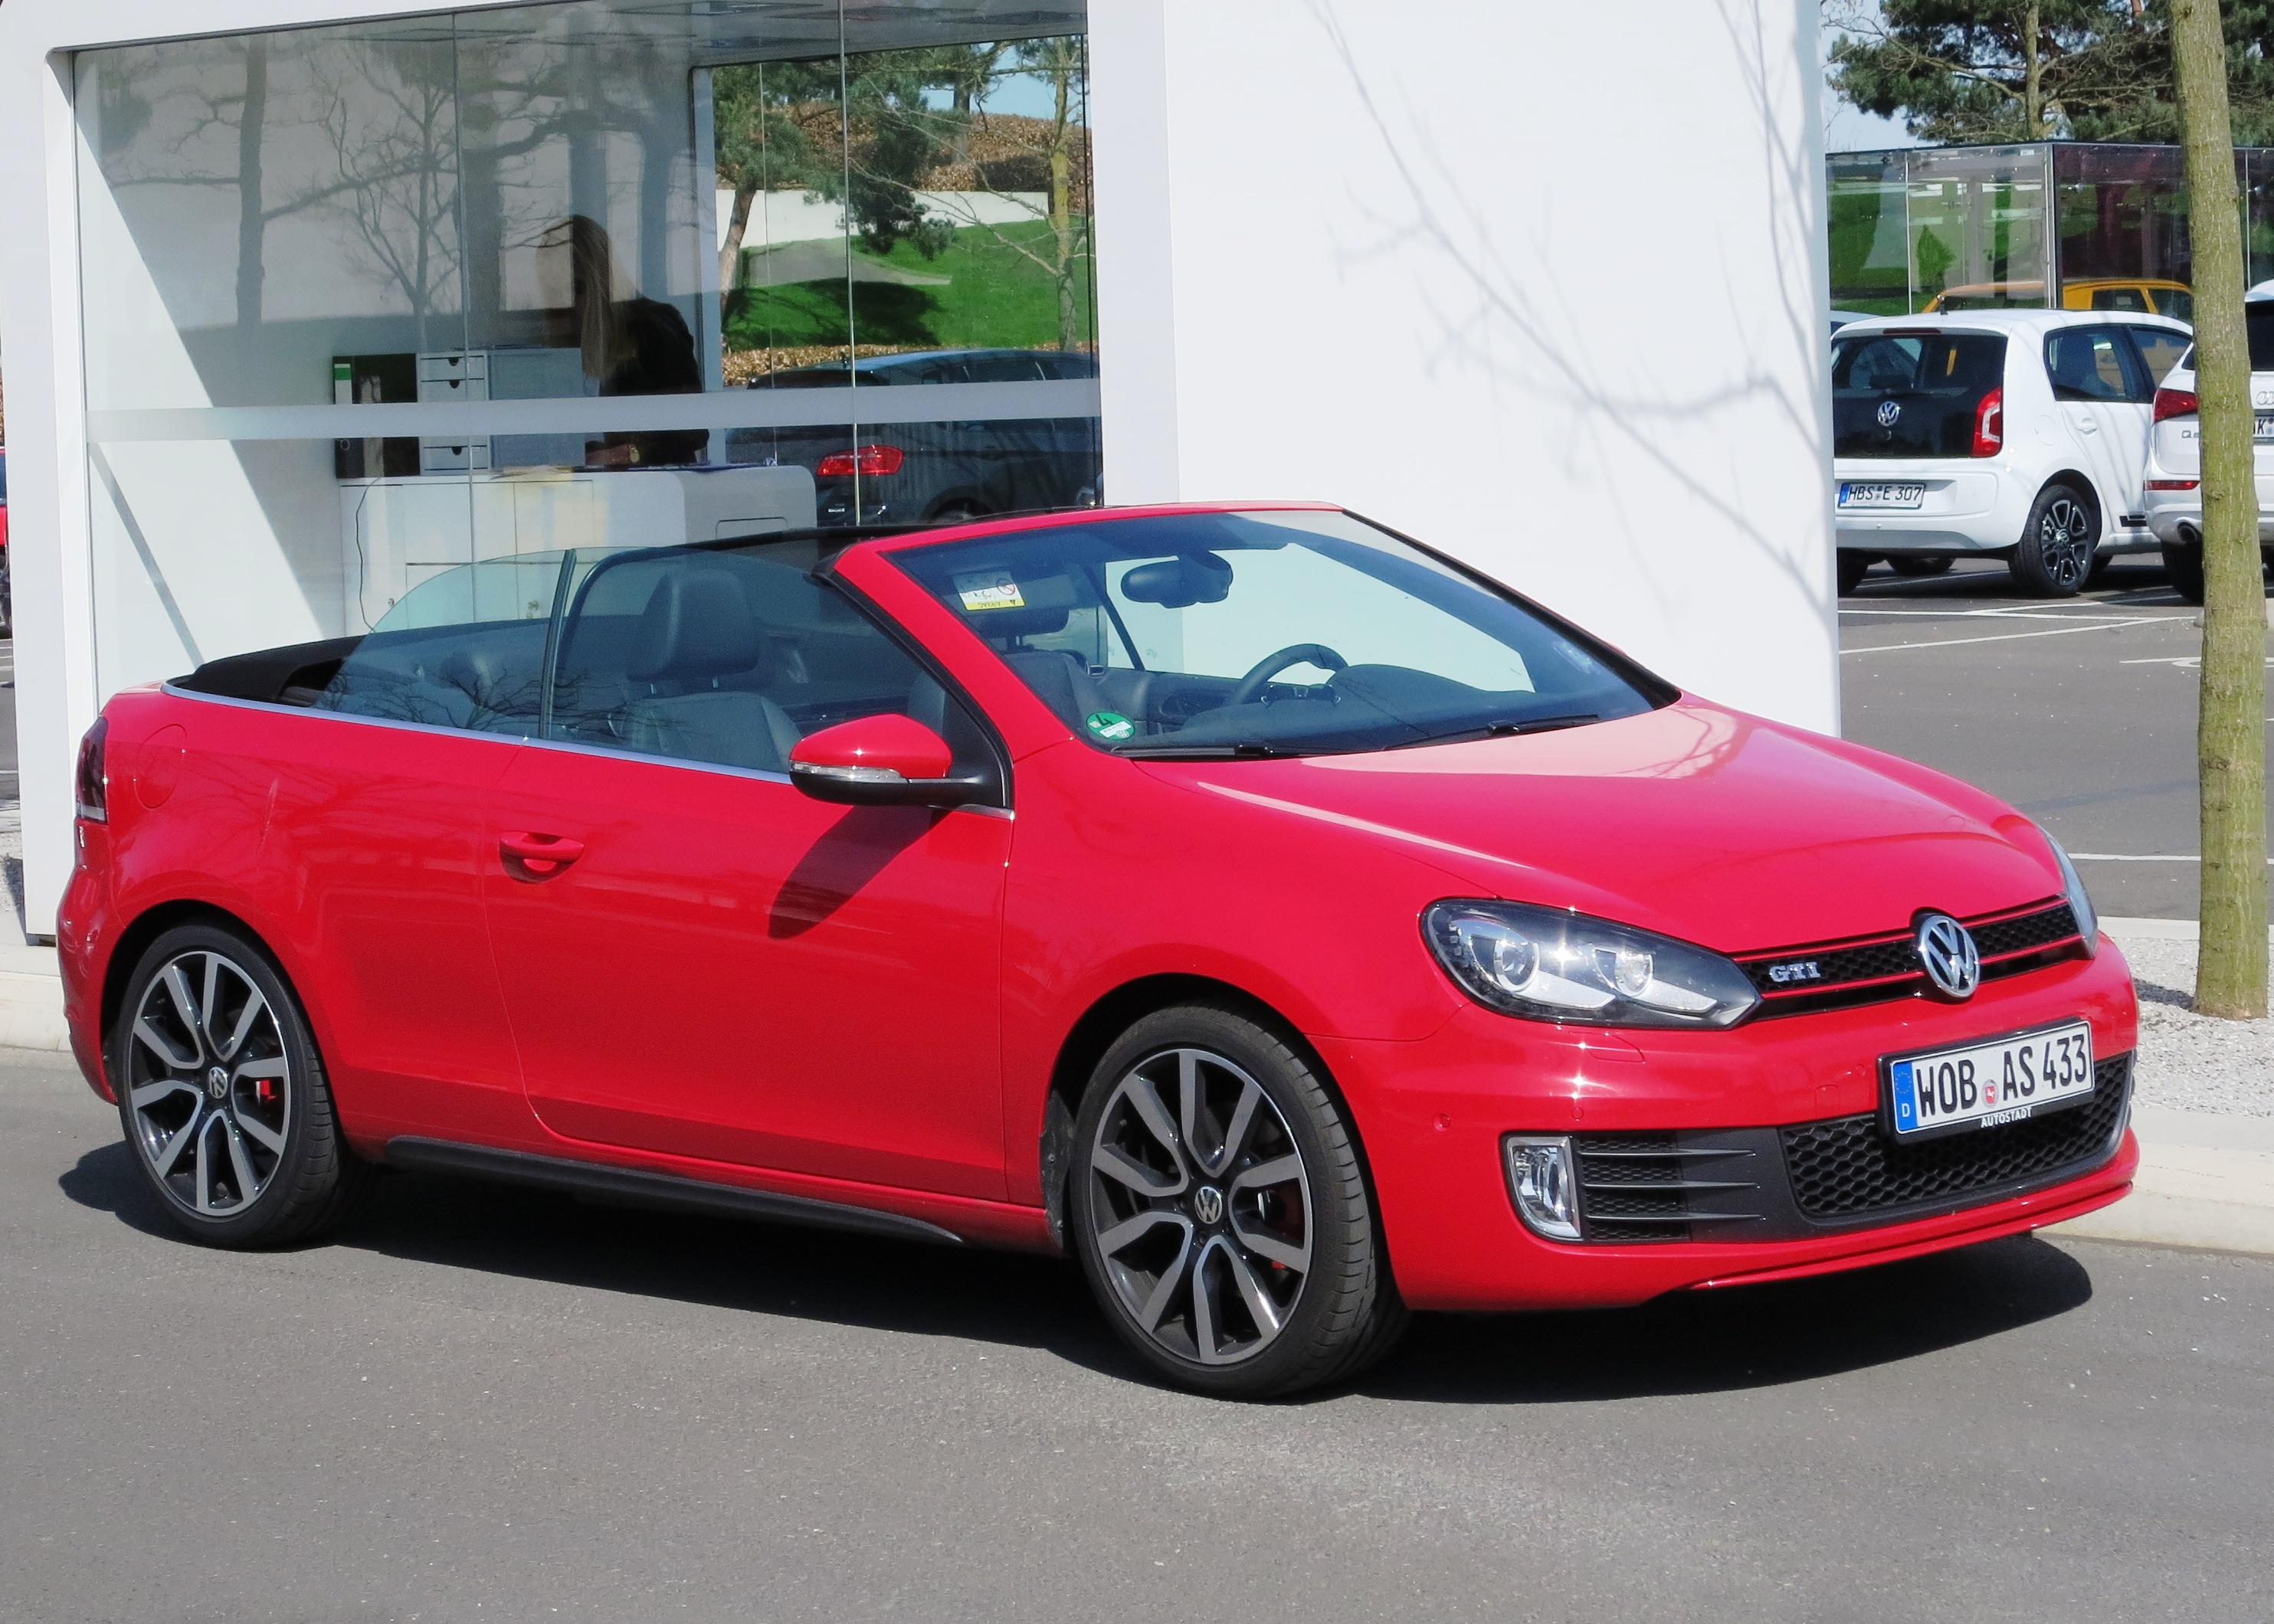 file volkswagen golf gti cabriolet 2015 in wolfsburg jpg wikimedia commons. Black Bedroom Furniture Sets. Home Design Ideas